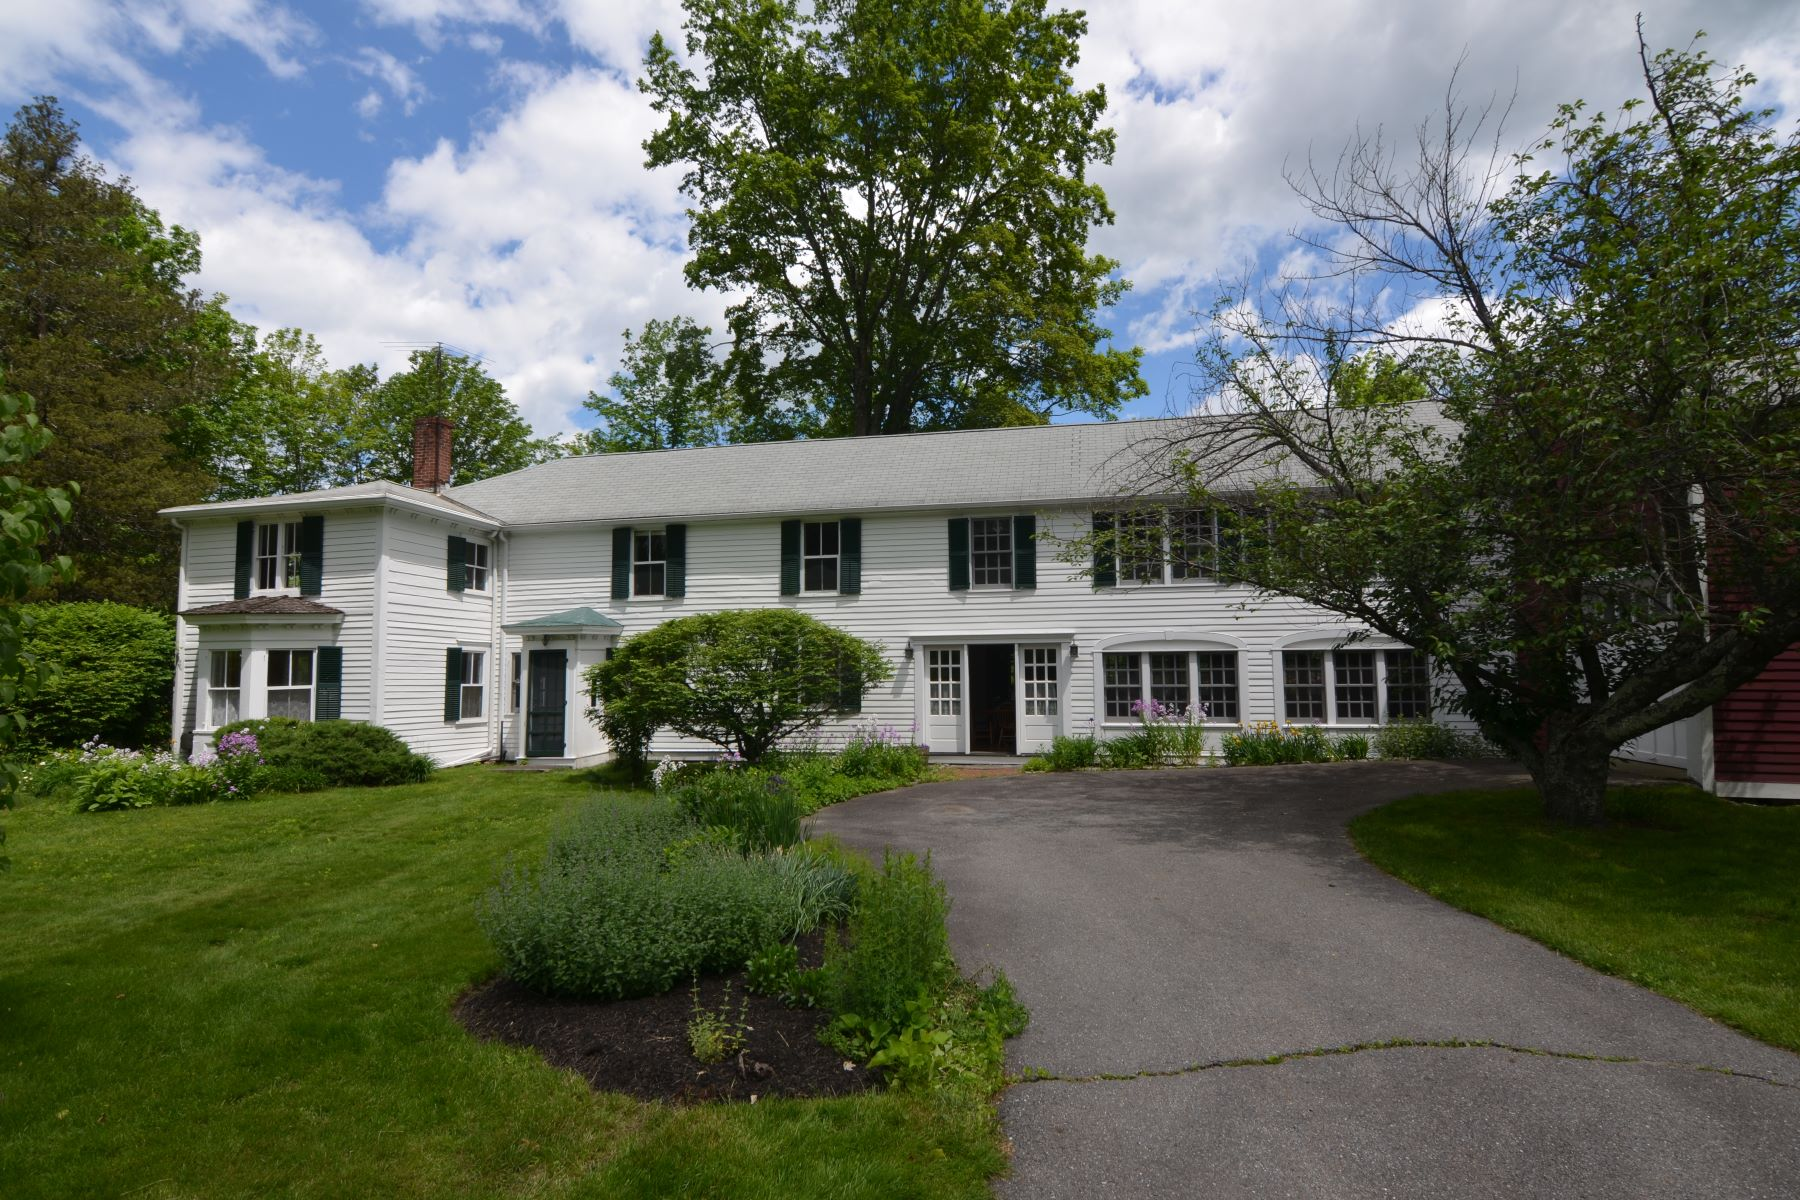 Single Family Home for Sale at Classic New England Antique 145 Center Street, Shirley, Massachusetts, 01464 United States